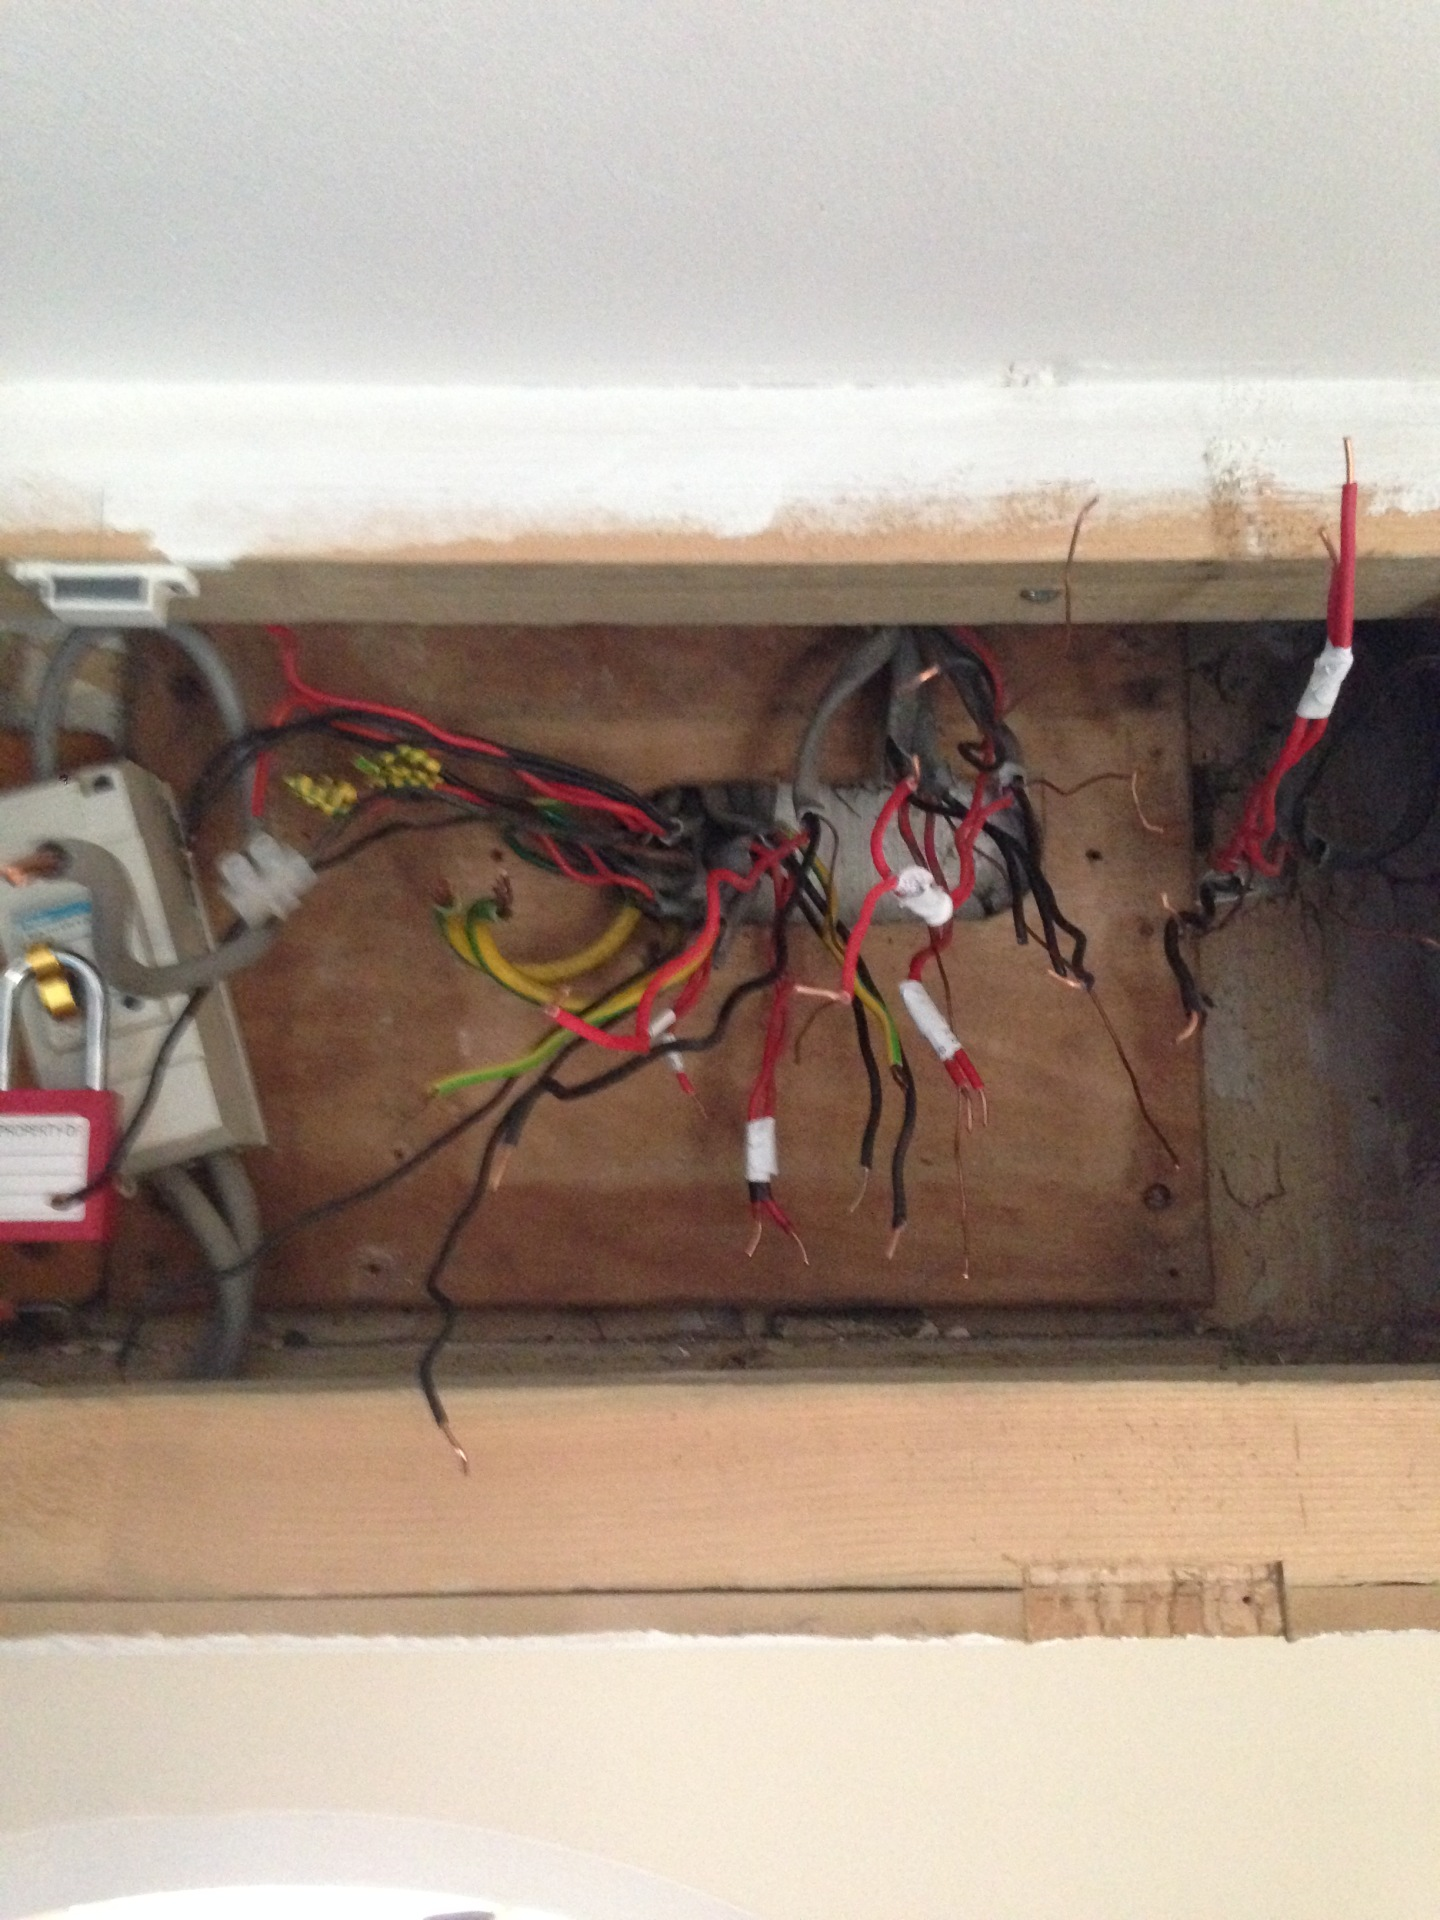 Exposed wires during a consumer unit changeover, note the correct locking off of the mains supply